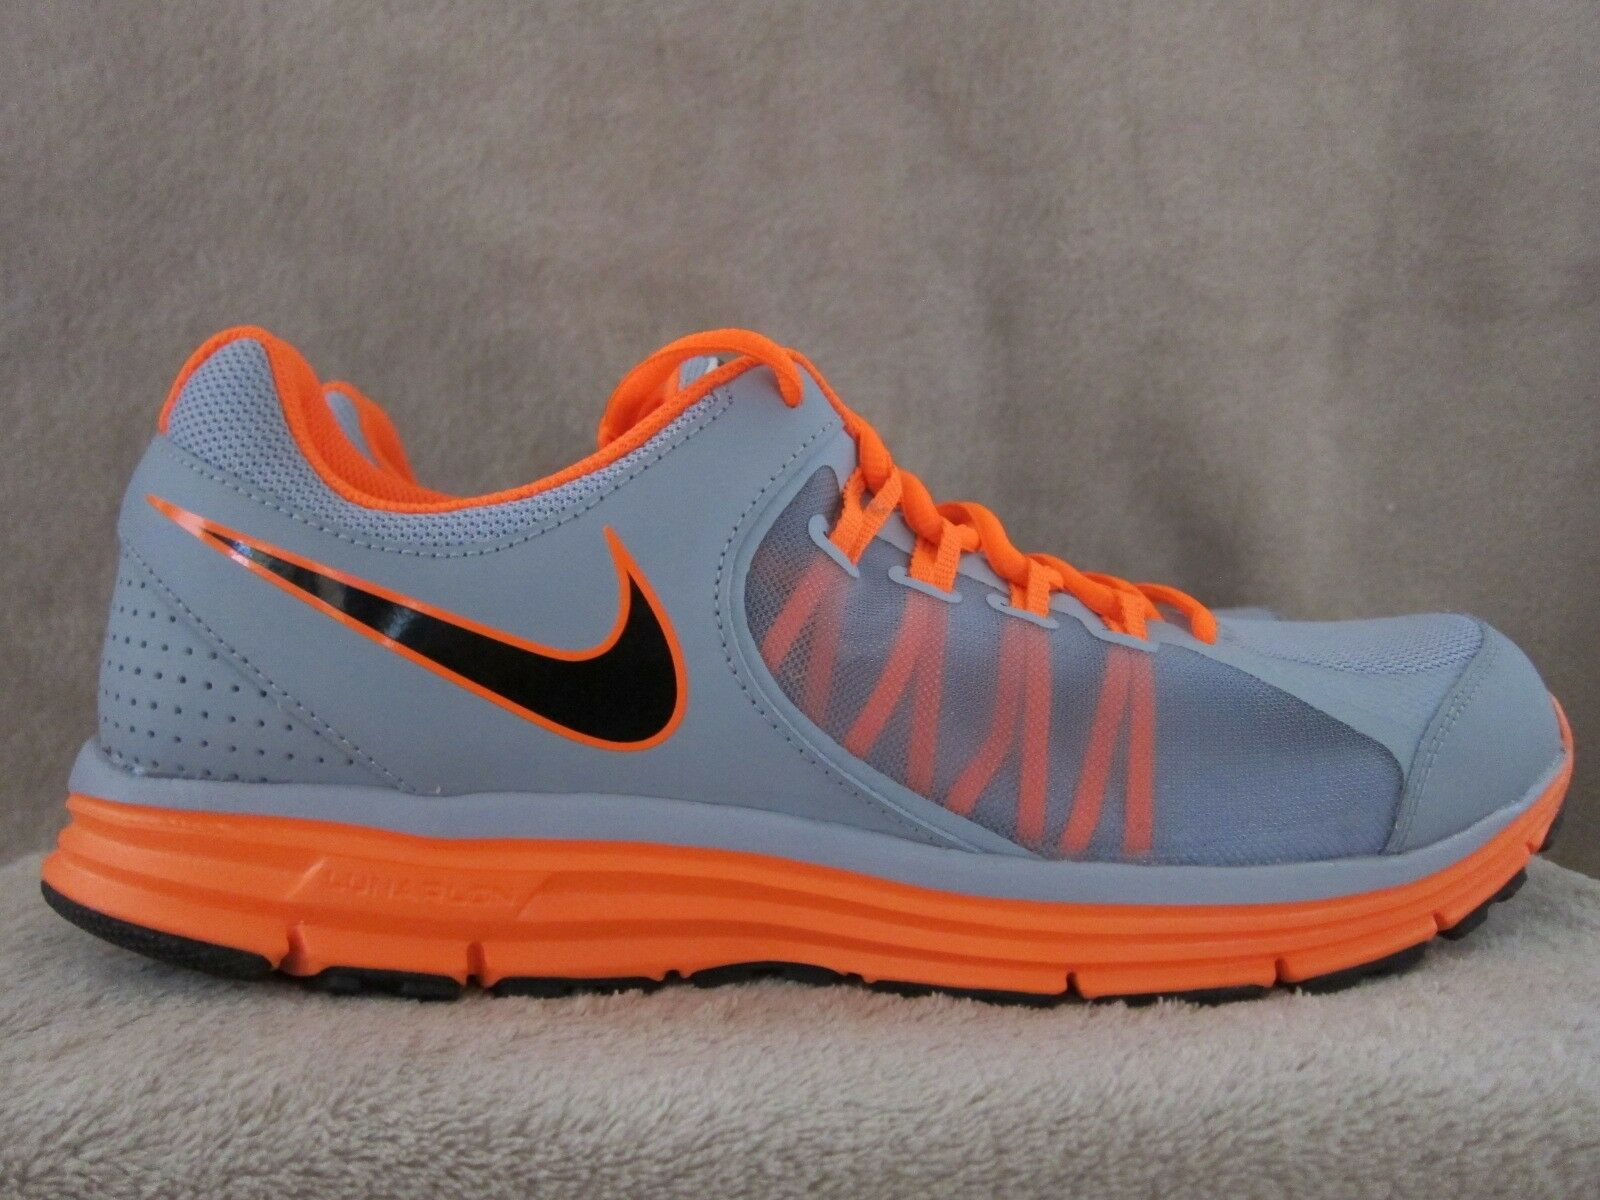 NIKE NIKE NIKE Mens Lunar Forever 3 Running Low Cut Sneakers shoes US 10.5 M NWB e9dab3